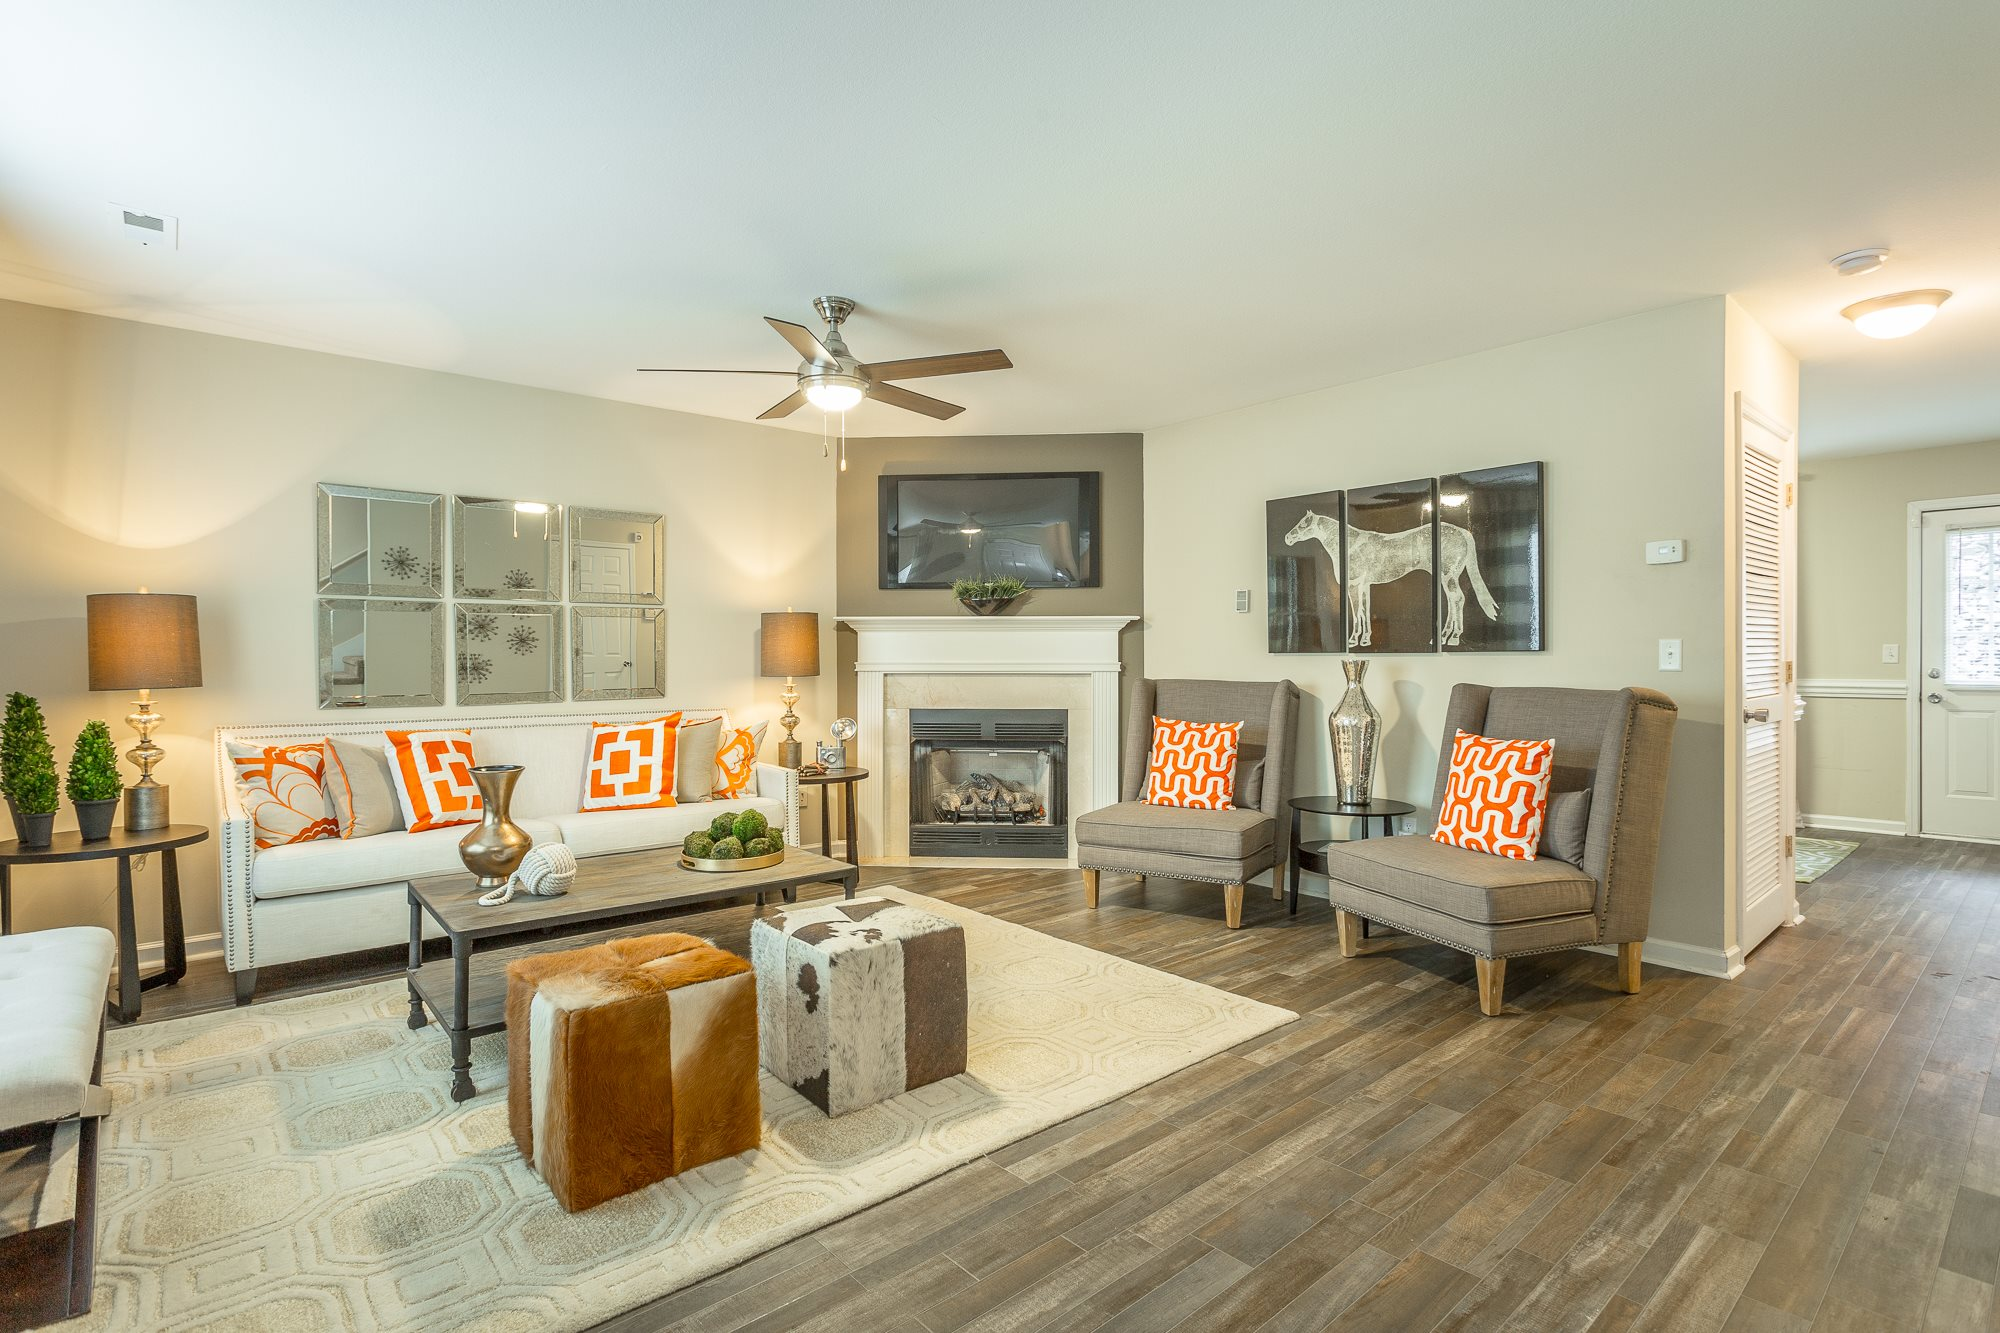 Living Room at Bluff View at Northside - Hixson TN 37343